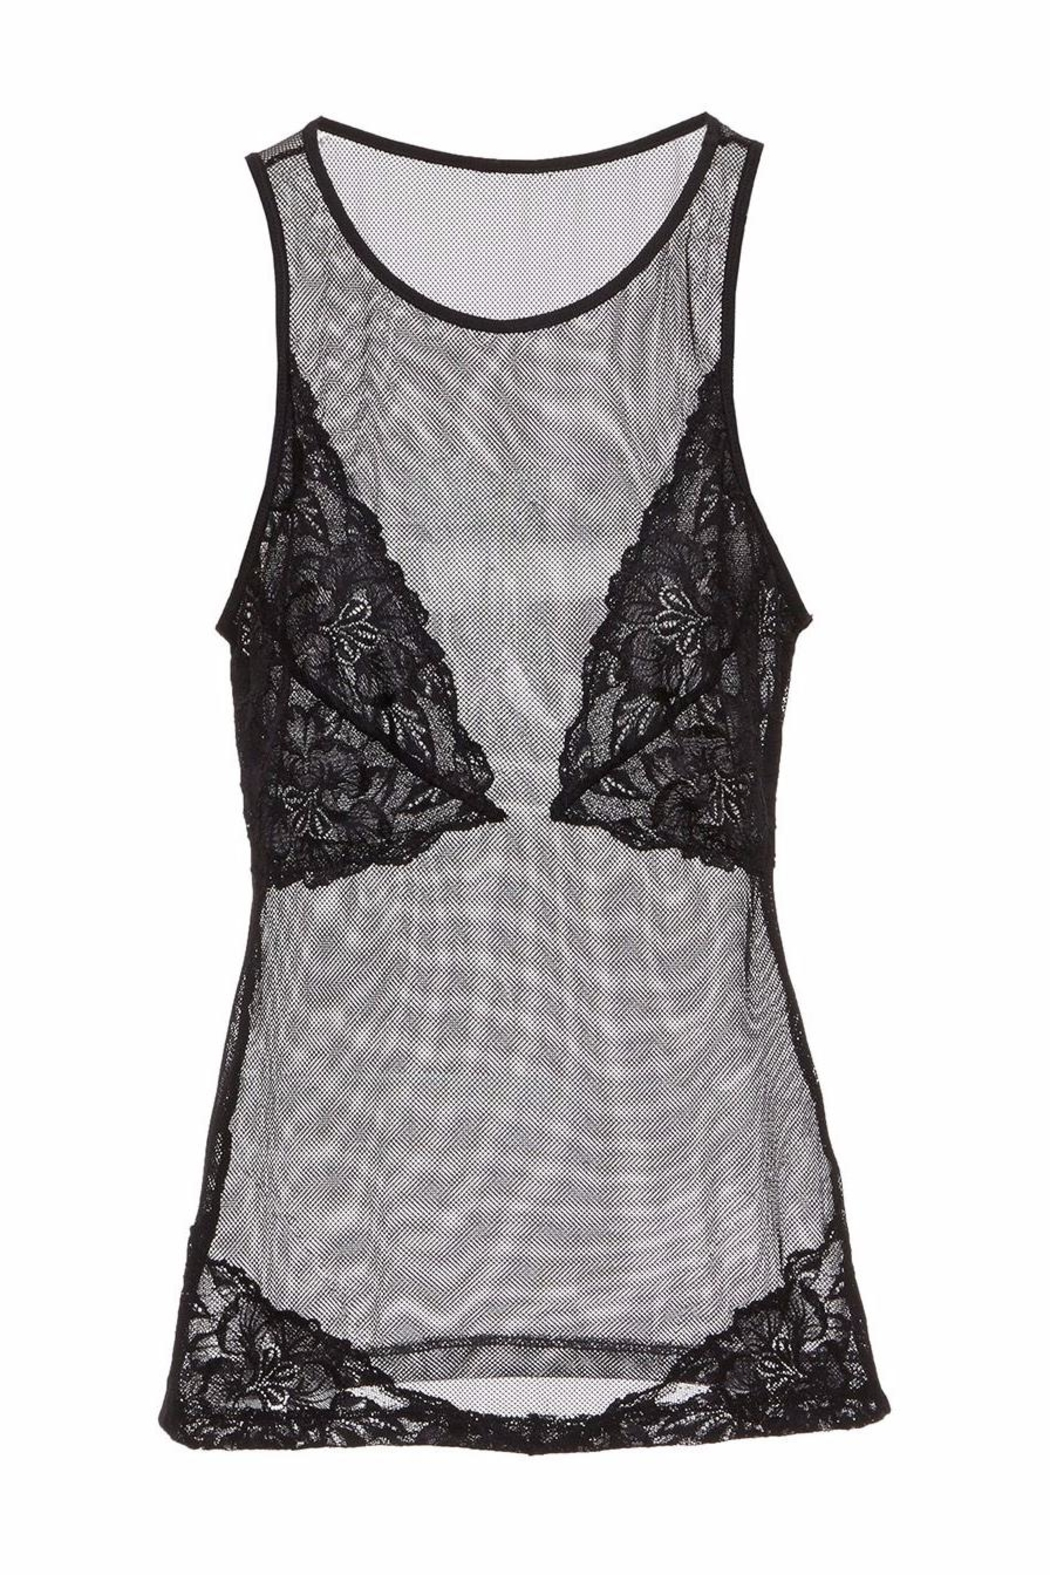 Cosabella Illusion Mesh Camisole - Side Cropped Image